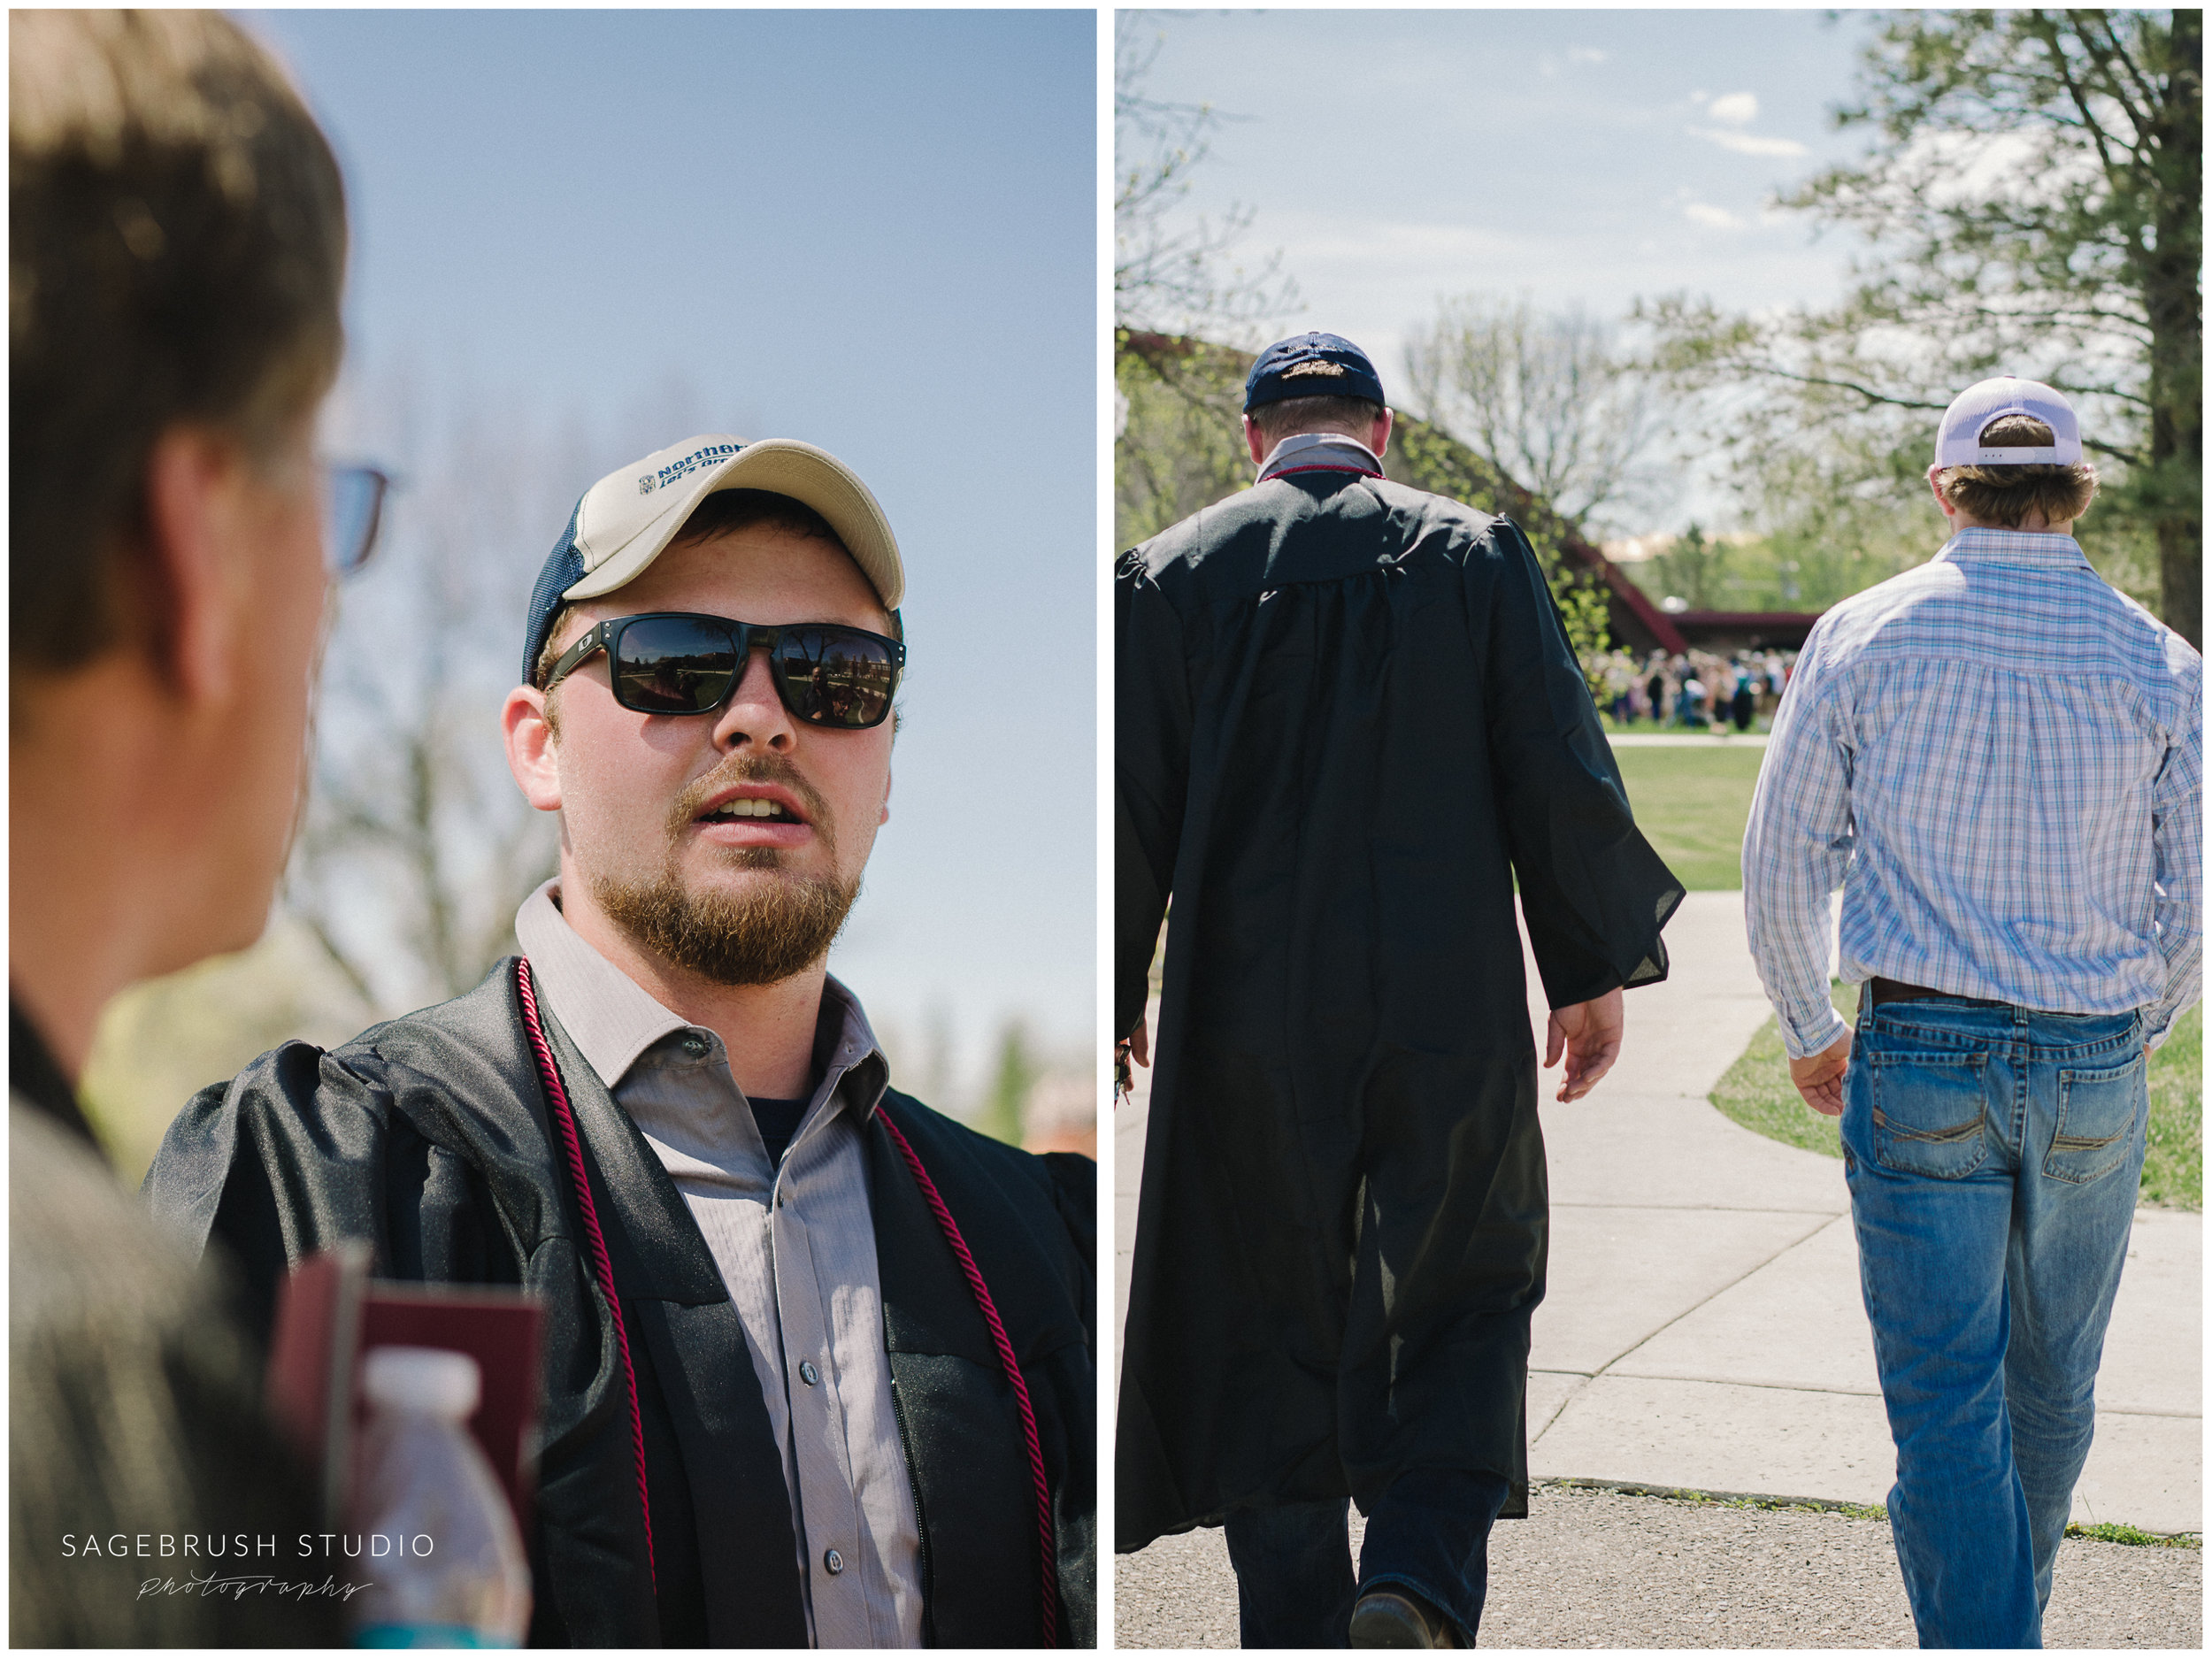 Mike graduates from MSU-Northern. Sagebrush Studio Photography from Shelby, Montana.